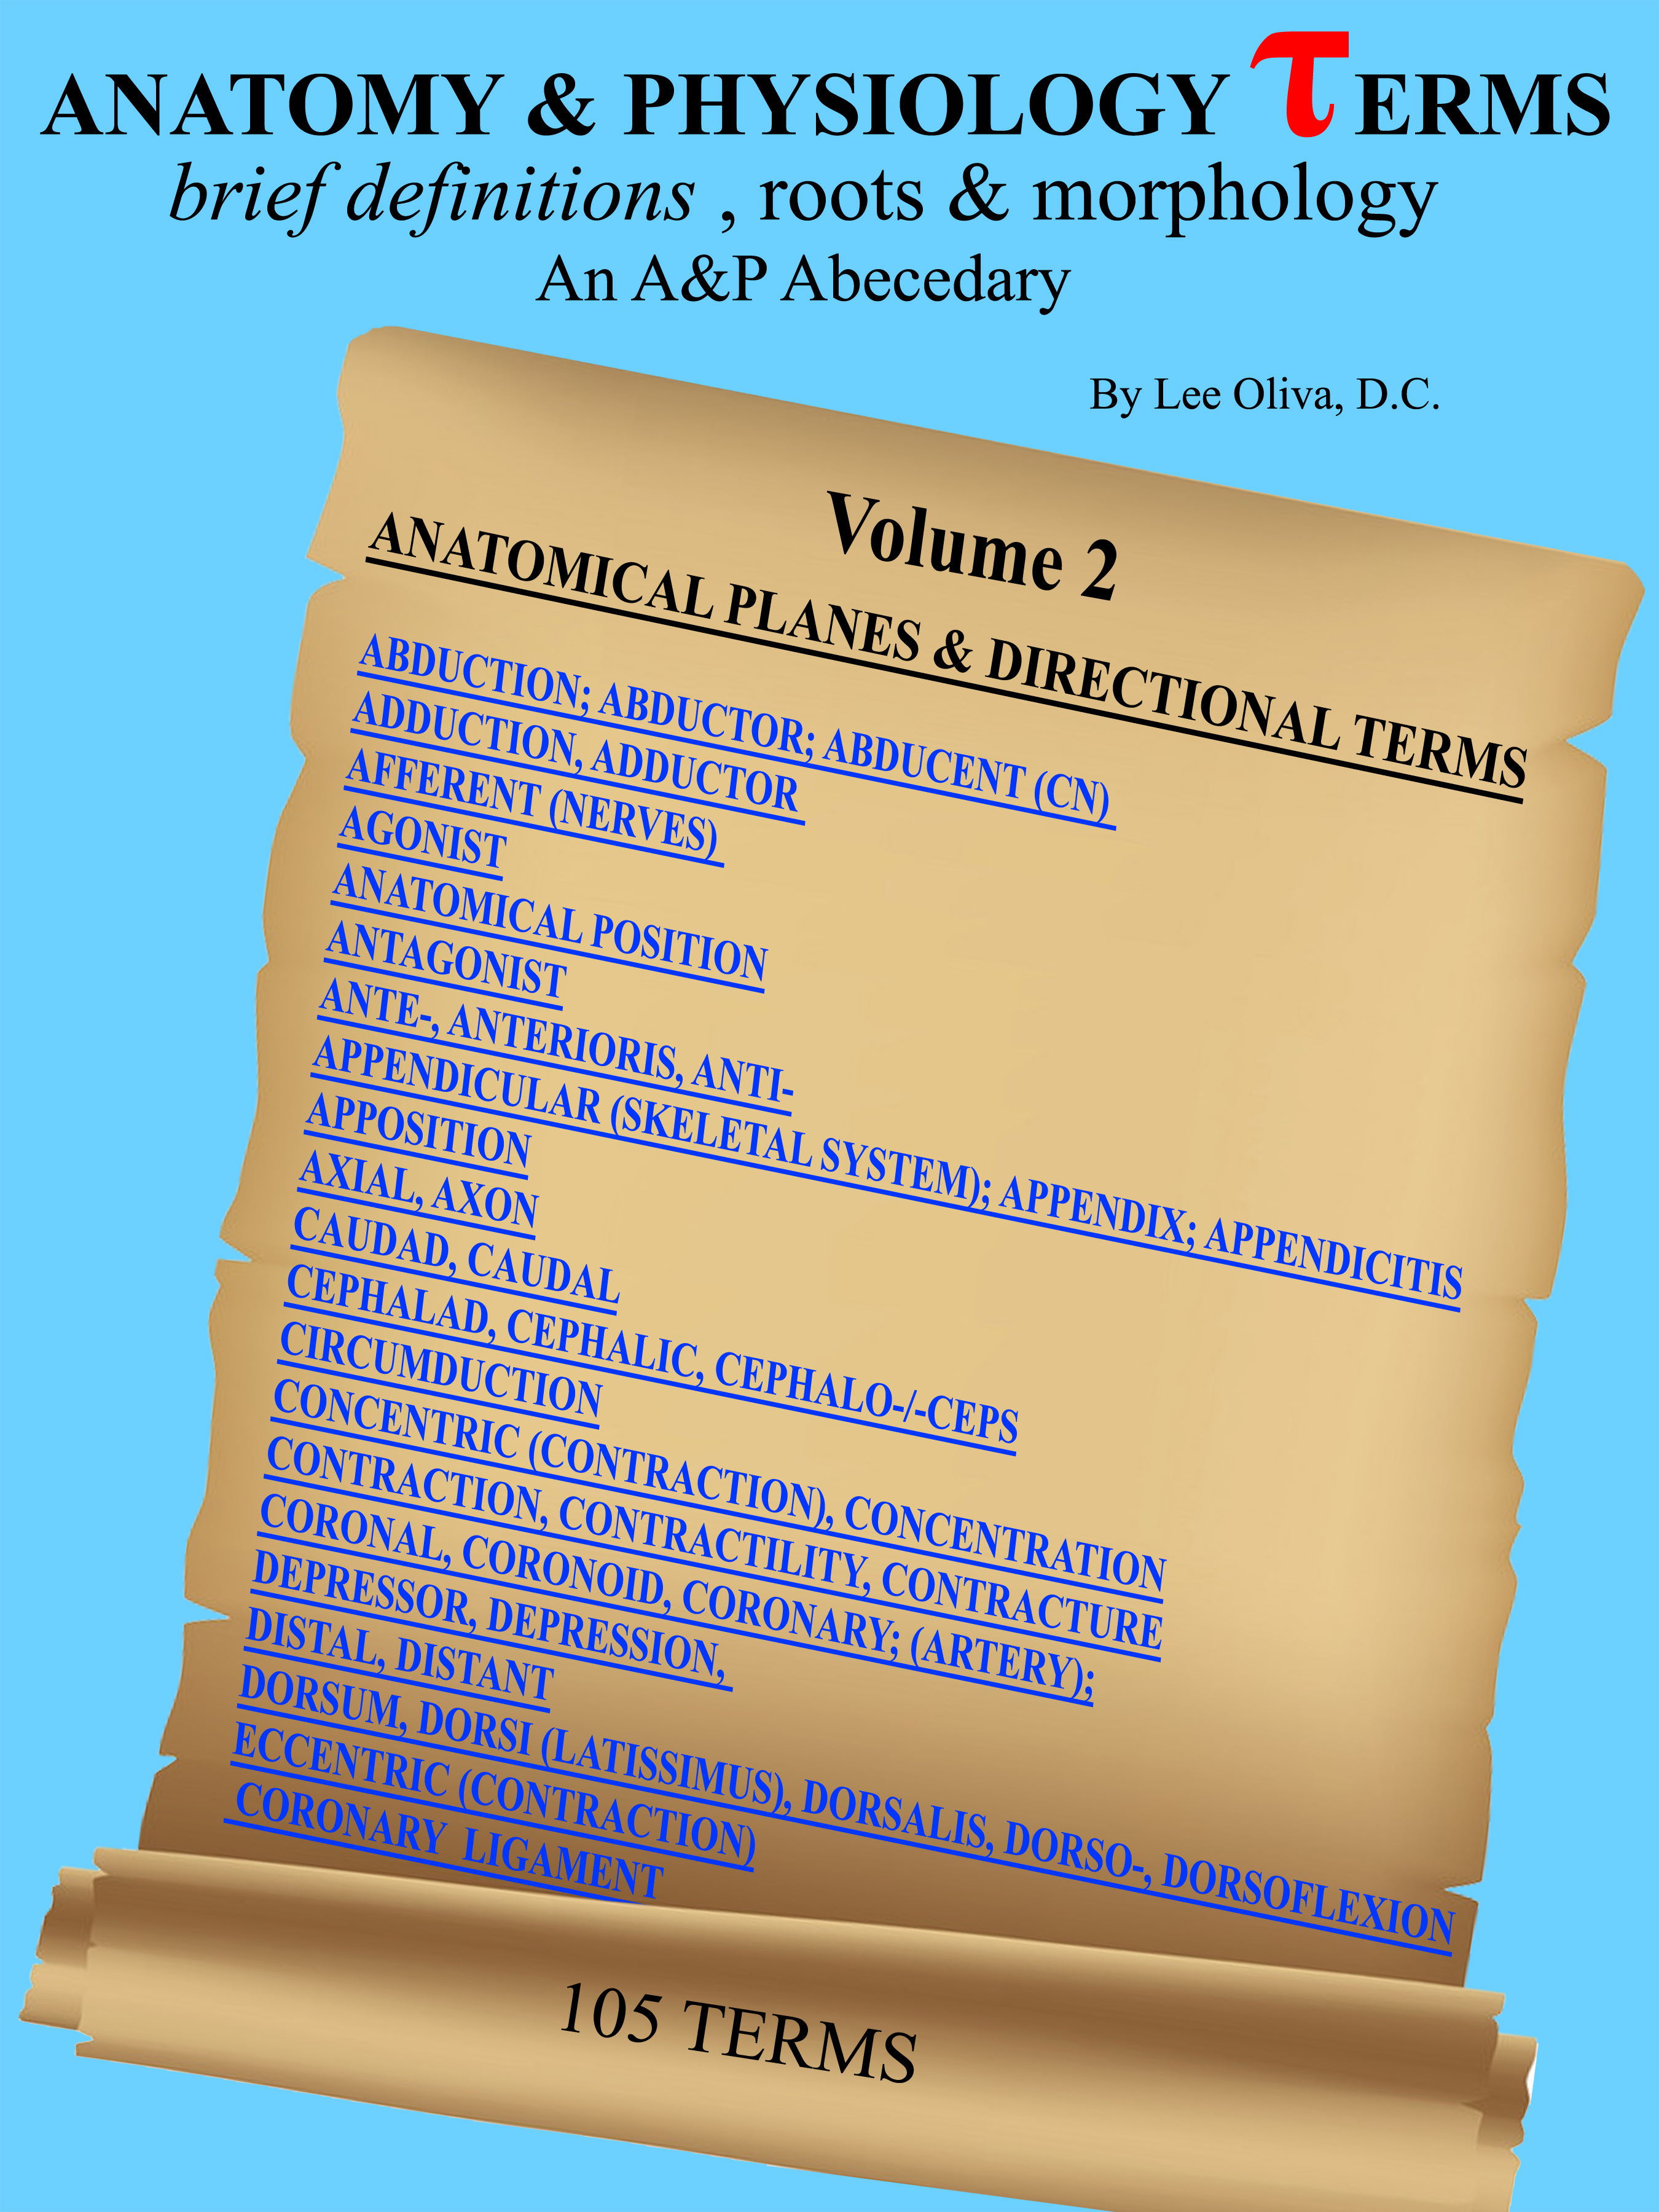 Anatomy and Physiology Terms: Brief Definitions, Roots & Morphology